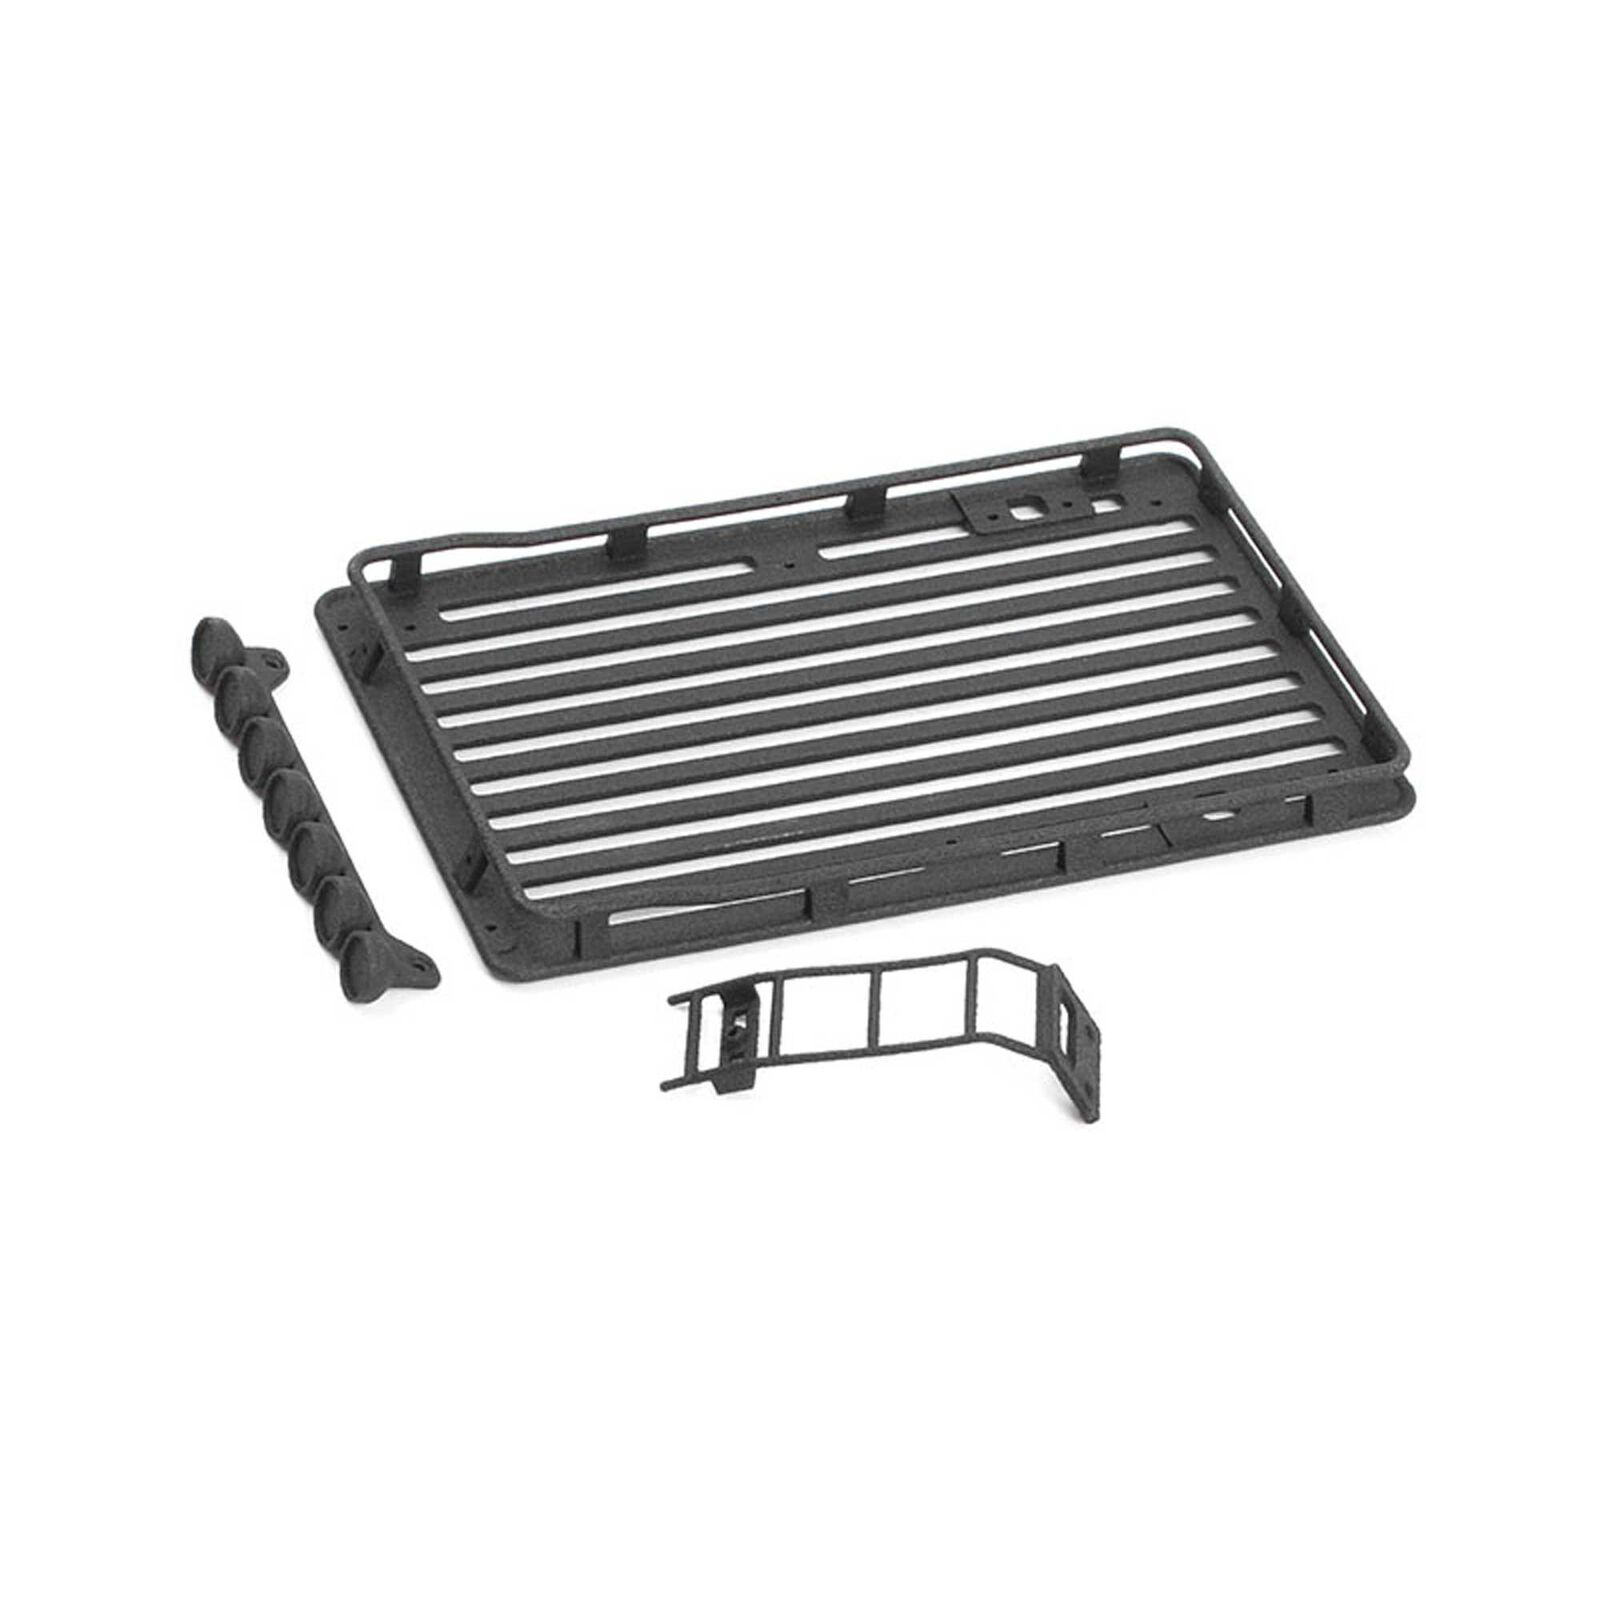 Roof Rack with Light Set & Ladder: Axial SCX24